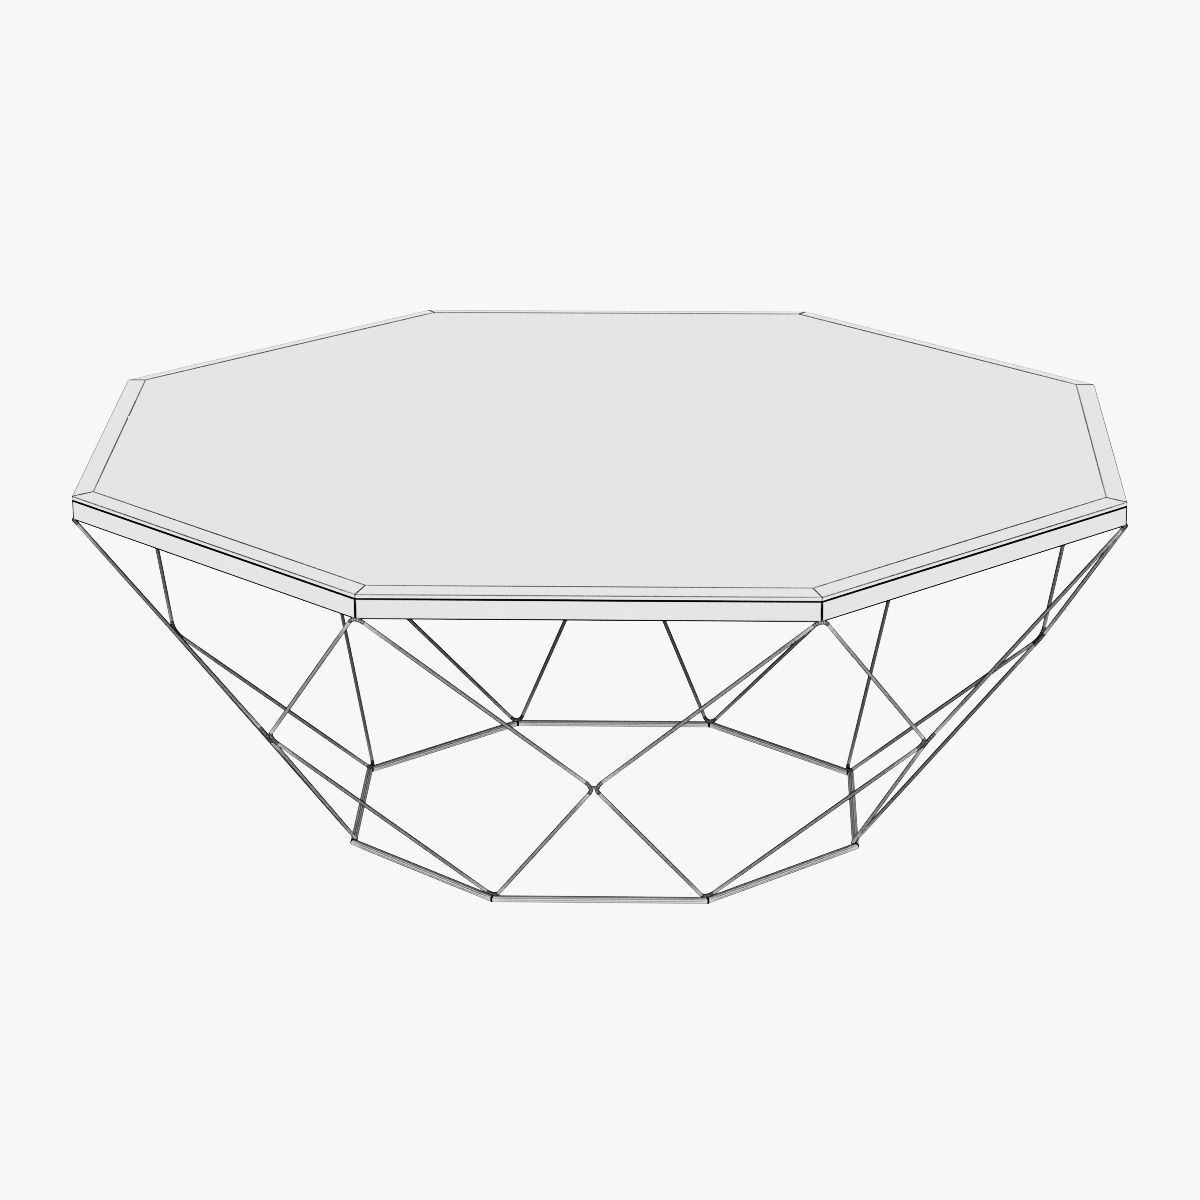 1200x1200 Coffee Table Drawing And More On Tables Desk With Design Ideas